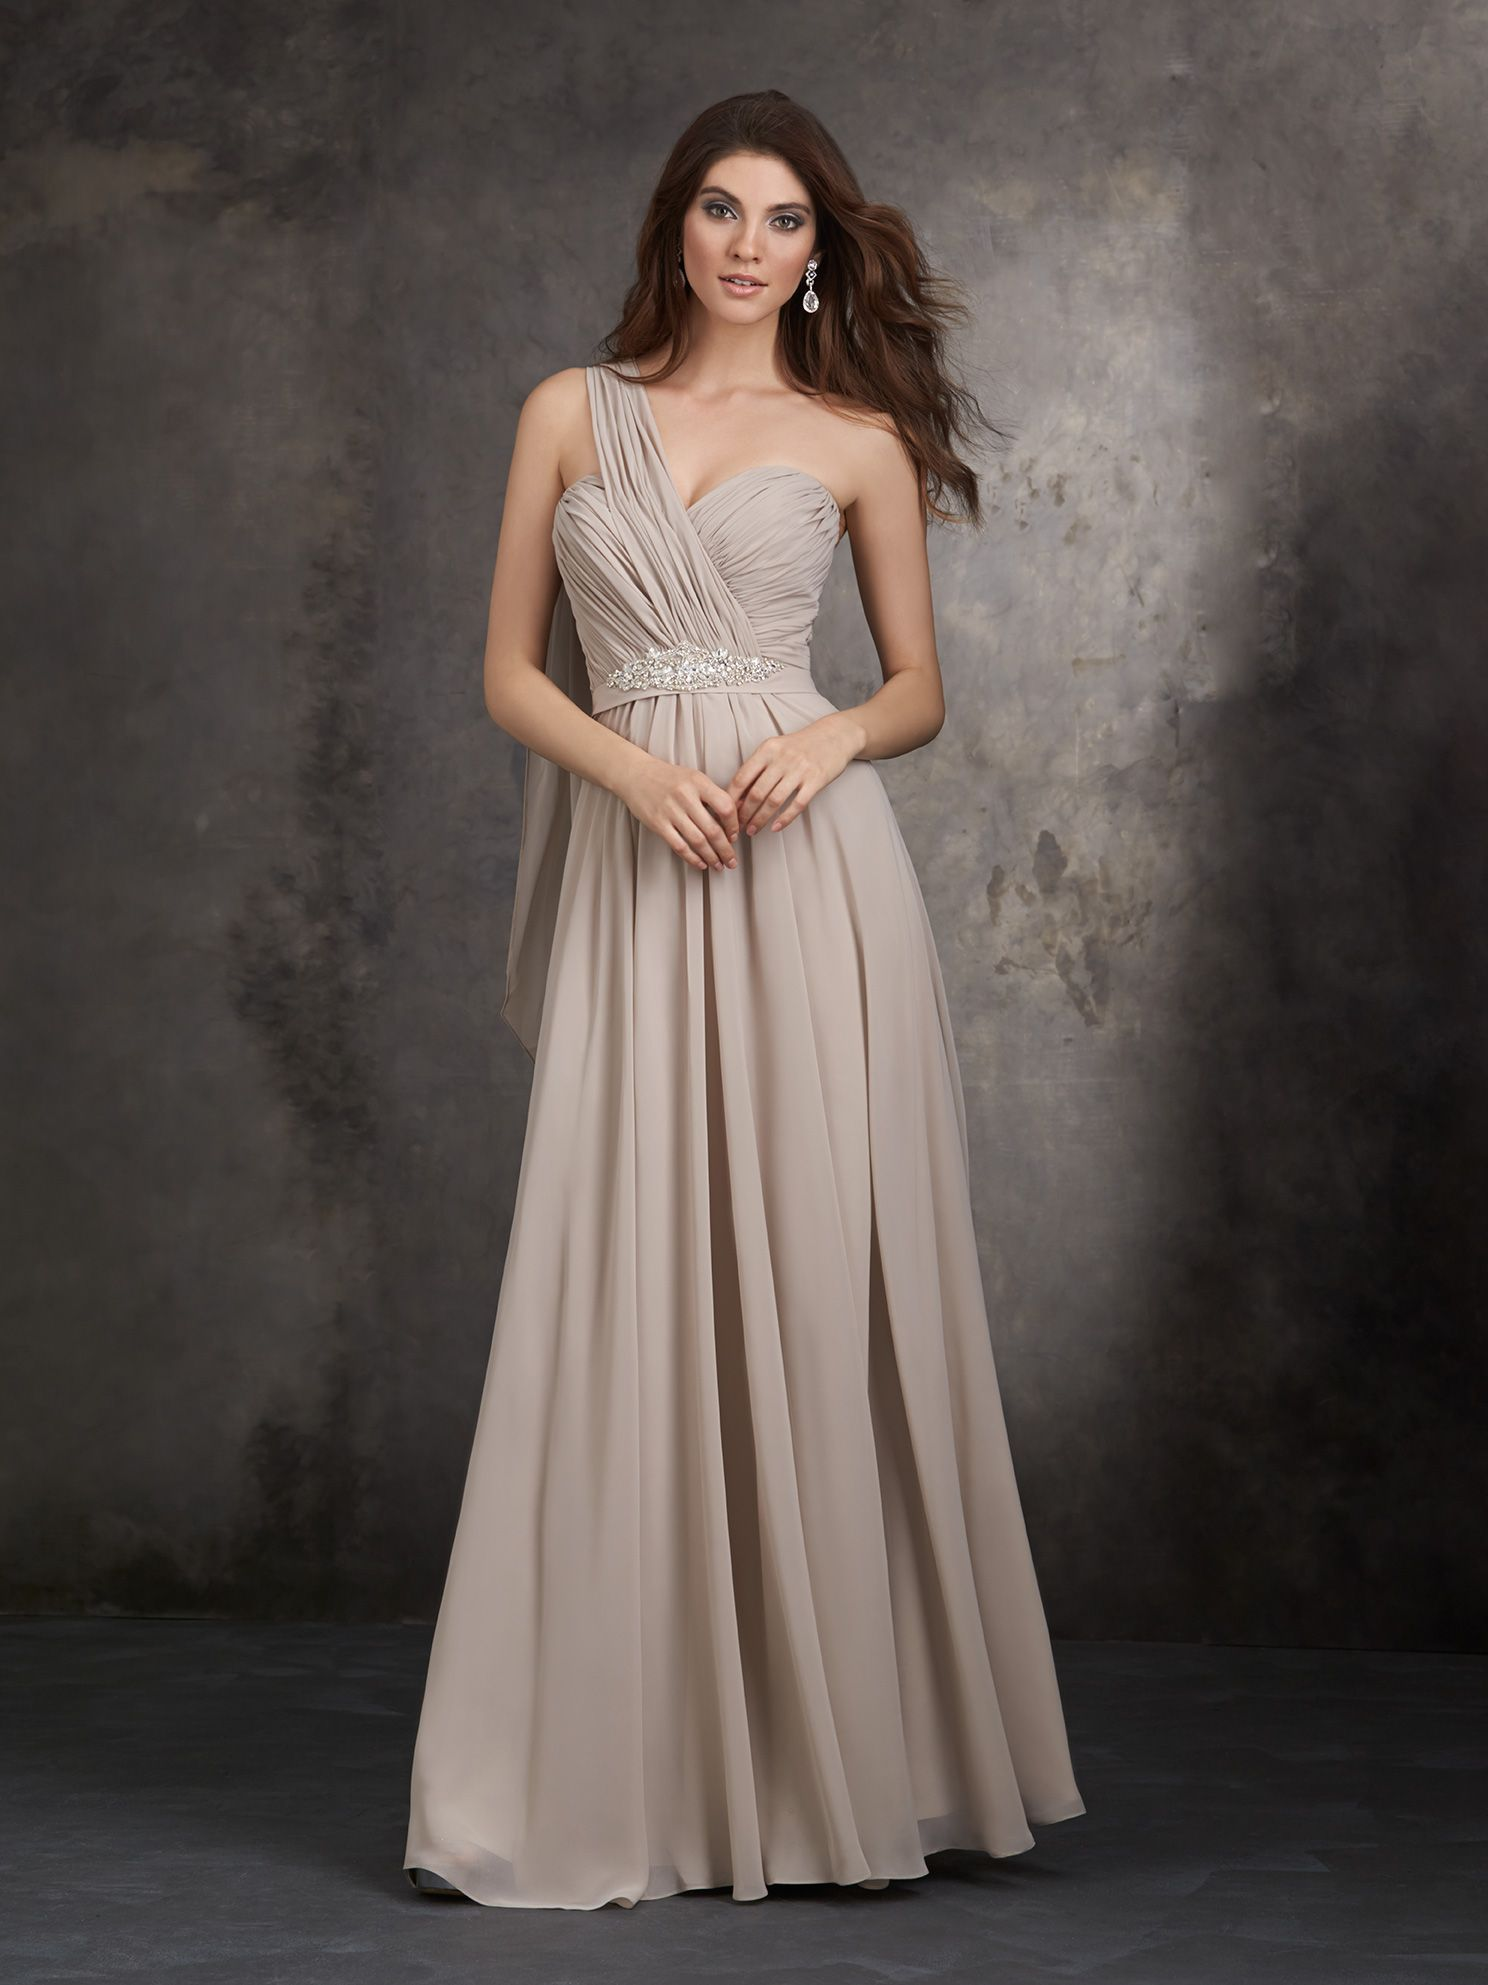 Convertible bridesmaid dress in pale blue allure bridals discover the allure 1407 bridesmaid dress find exceptional allure bridesmaid dresses at the wedding shoppe ombrellifo Image collections